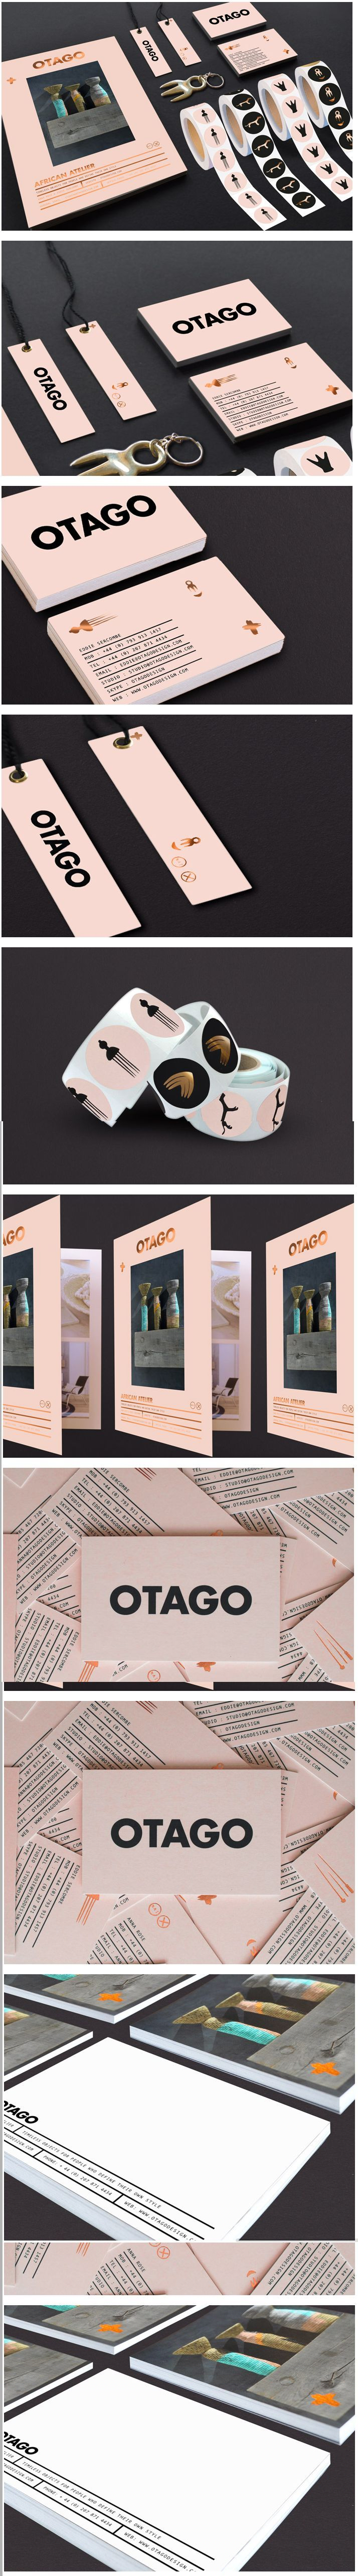 best Package design images on Pinterest Corporate identity